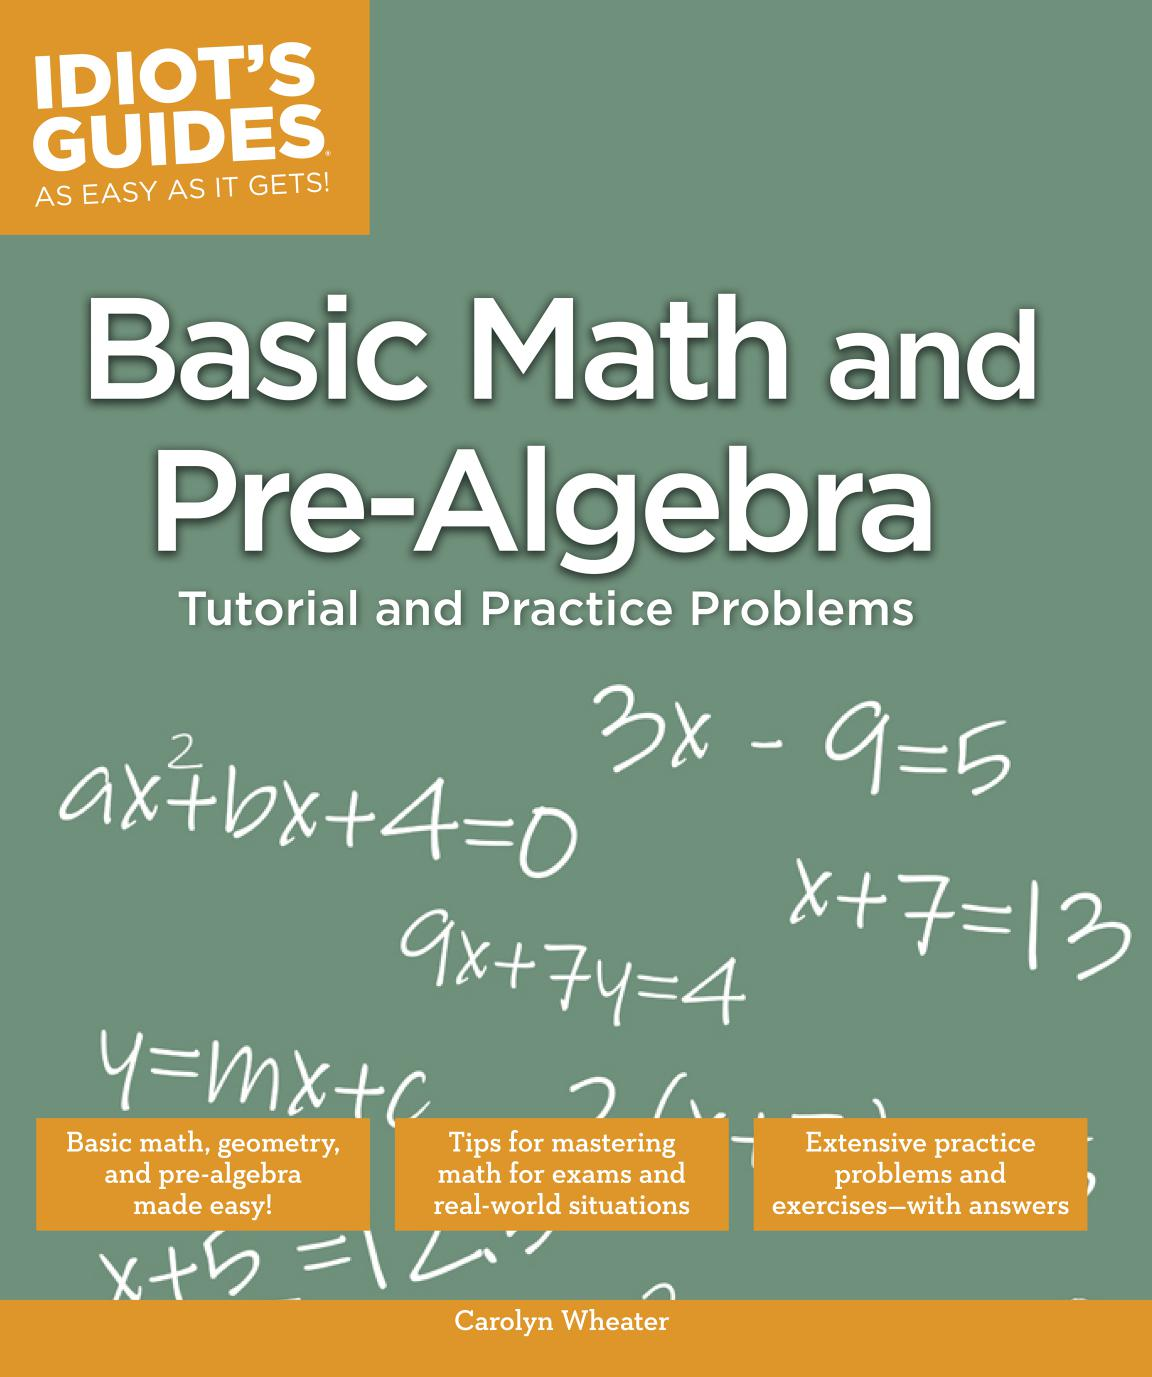 Idiot\'s Guides: Basic Math and Pre-Algebra - Free eBooks Download